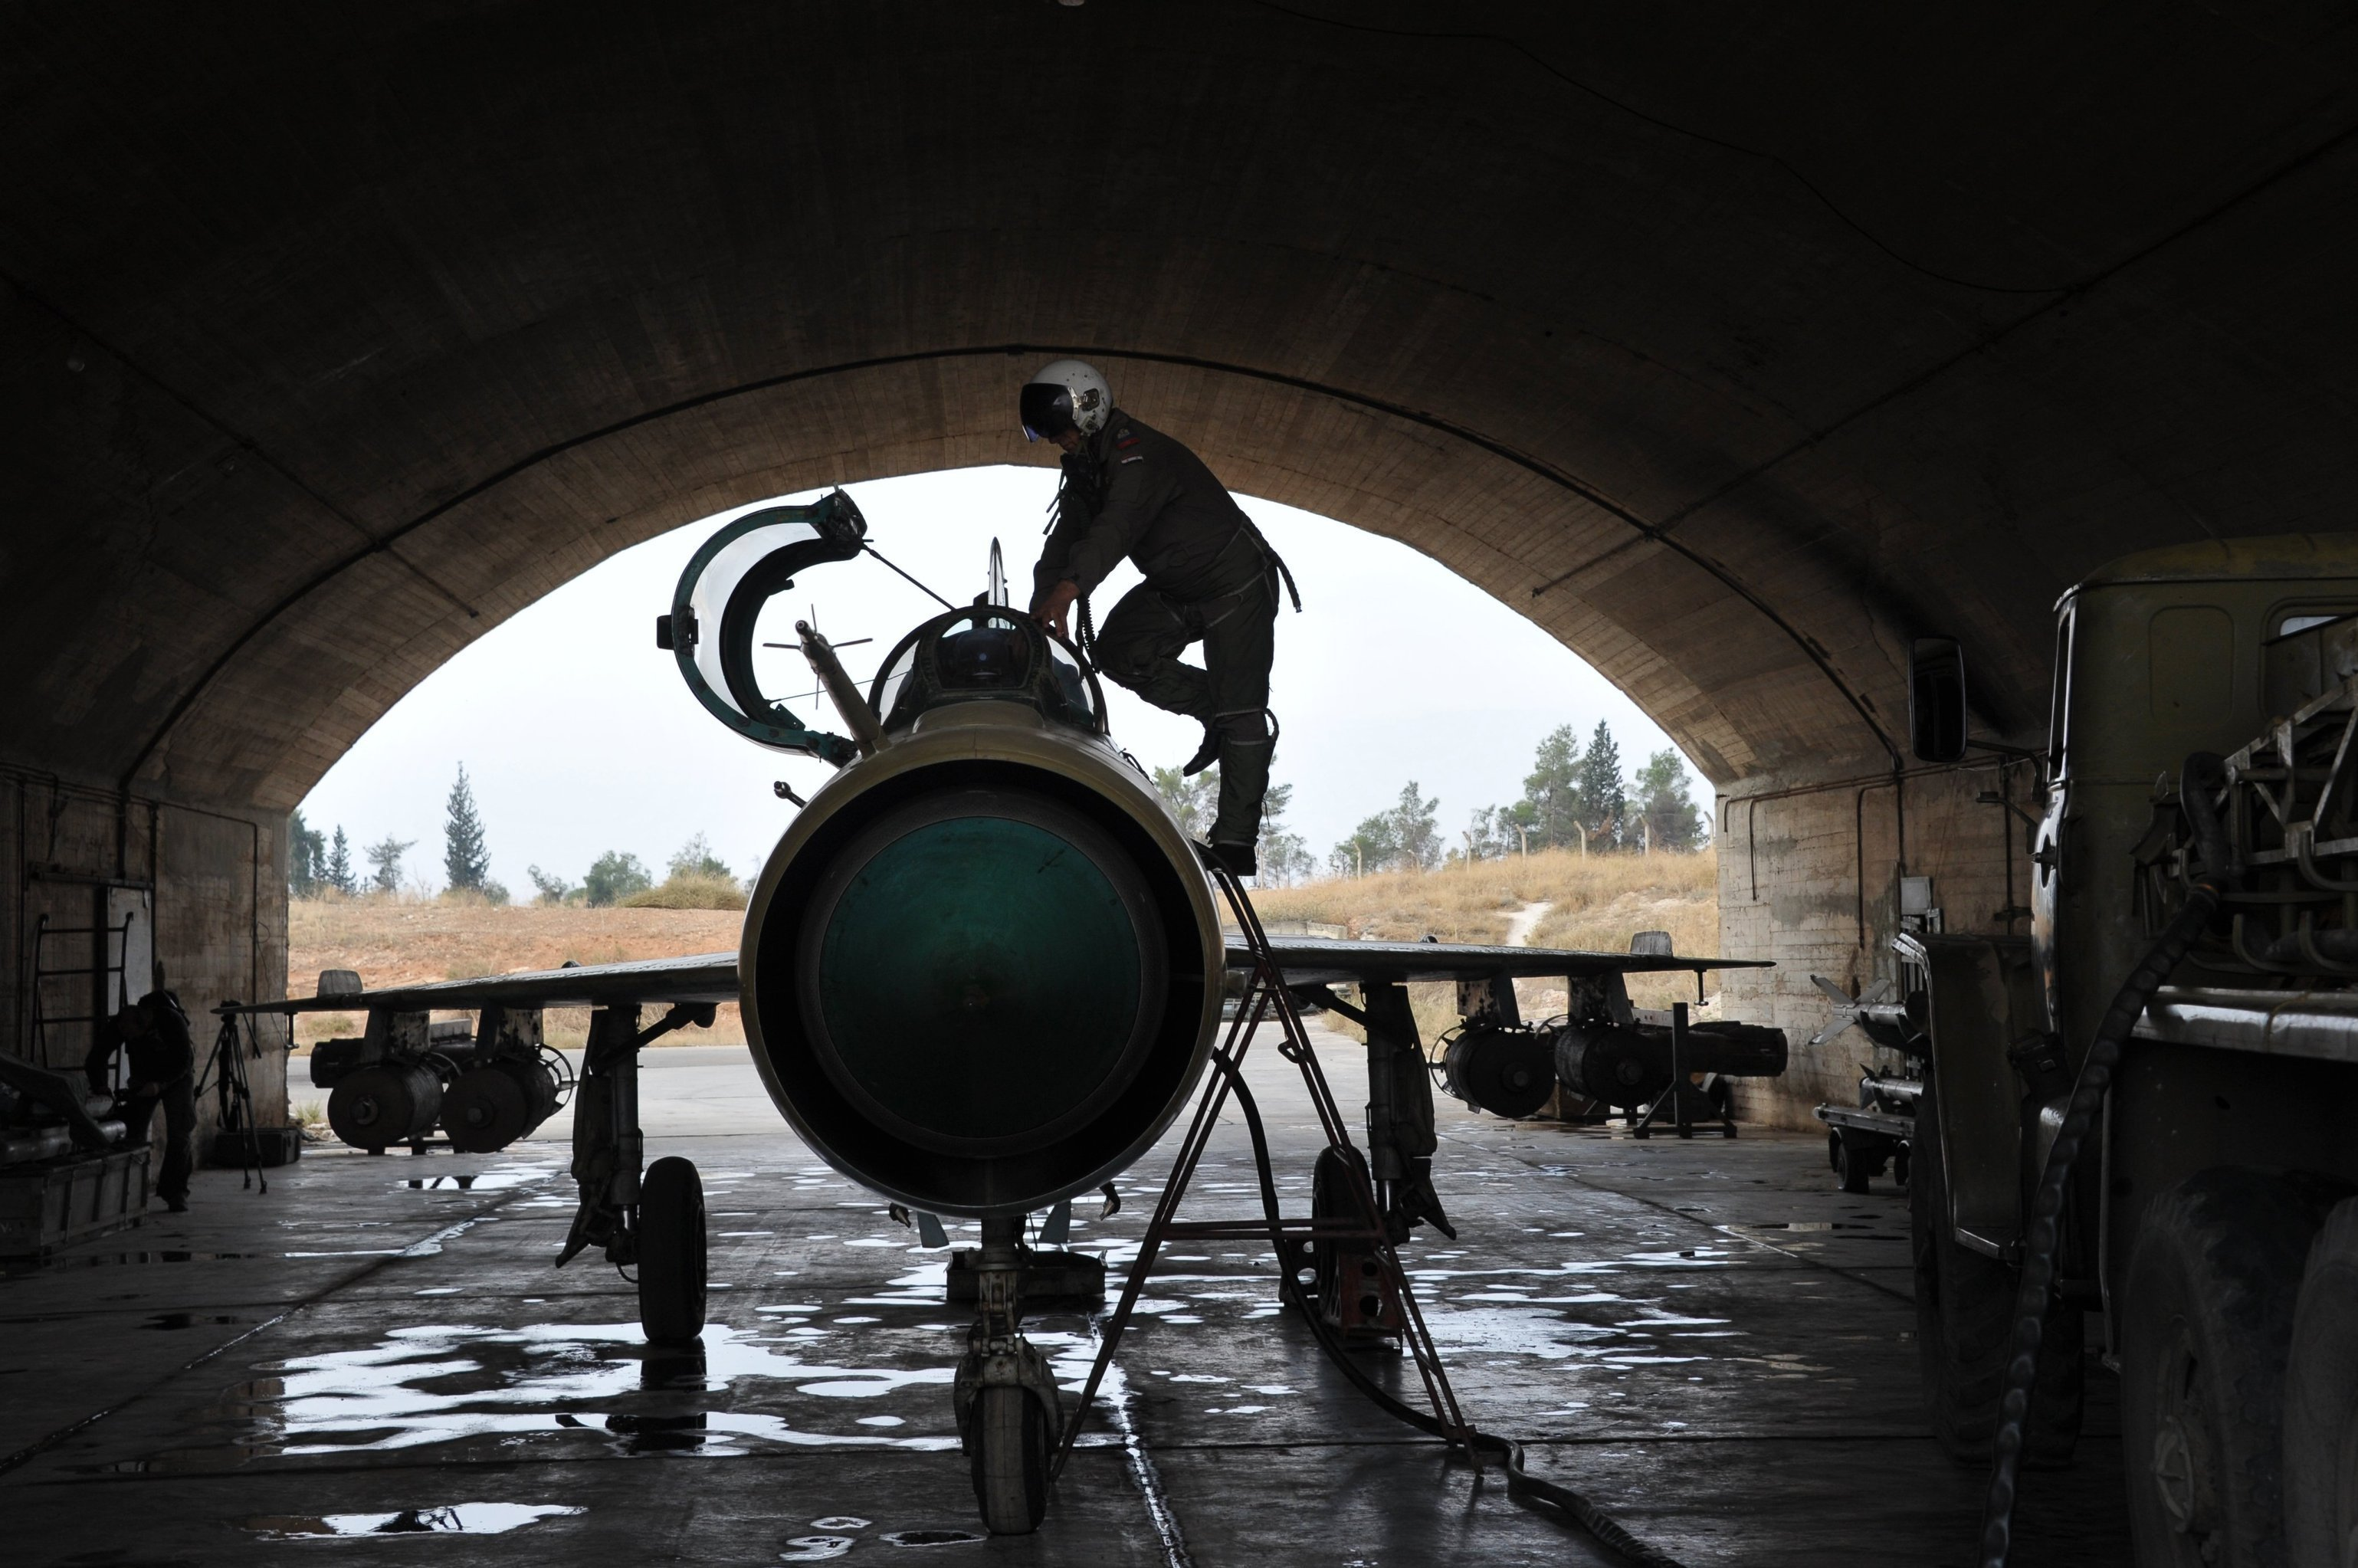 A Syrian pilot checks a MiG-21 aircraft of the Syrian Air Force before a mission at the Hama airbase near the city of Hama, Syria's Hama Province. (File)